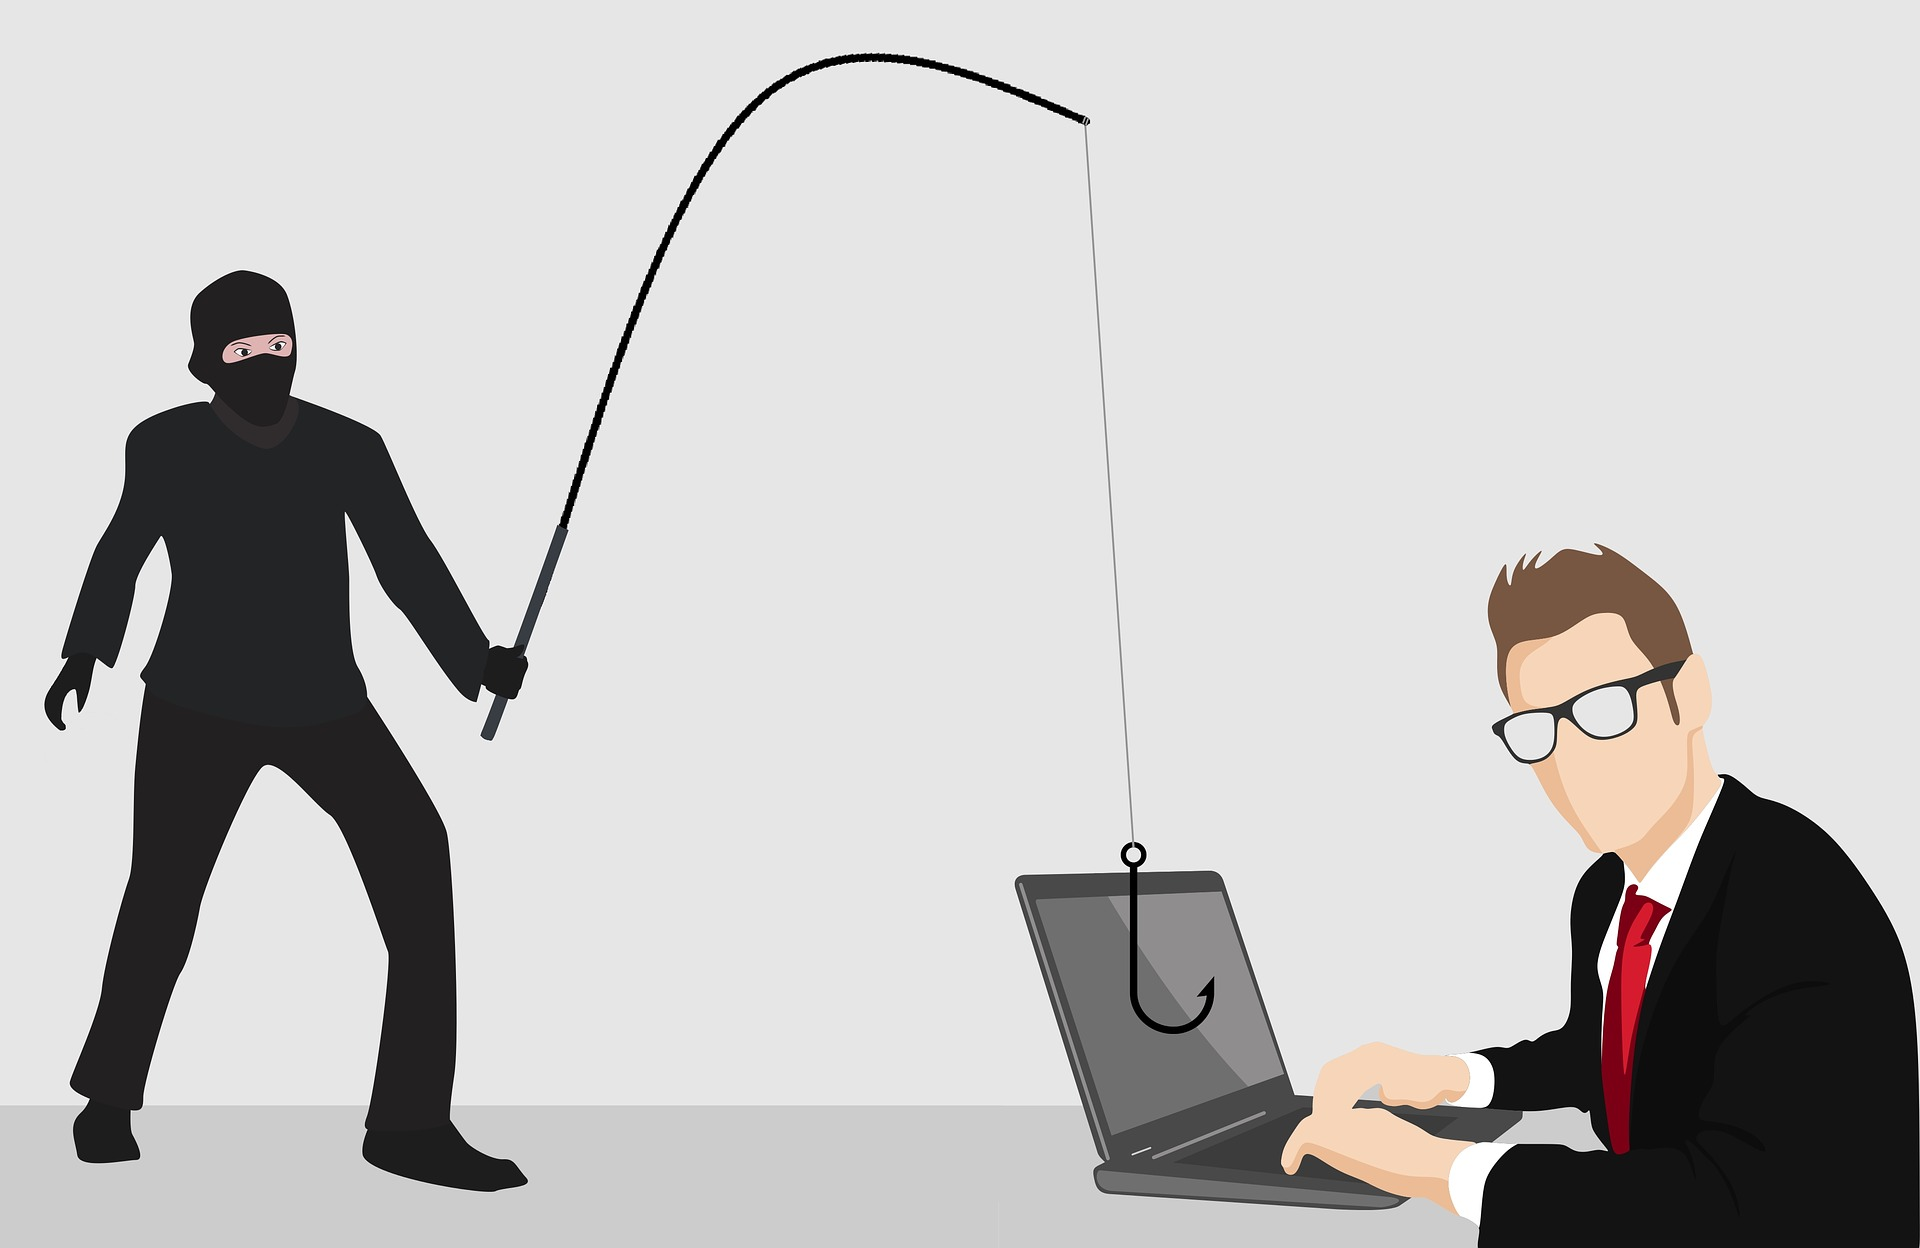 You Have 3 Rejected Incoming Messages Office 365 Phishing Scam